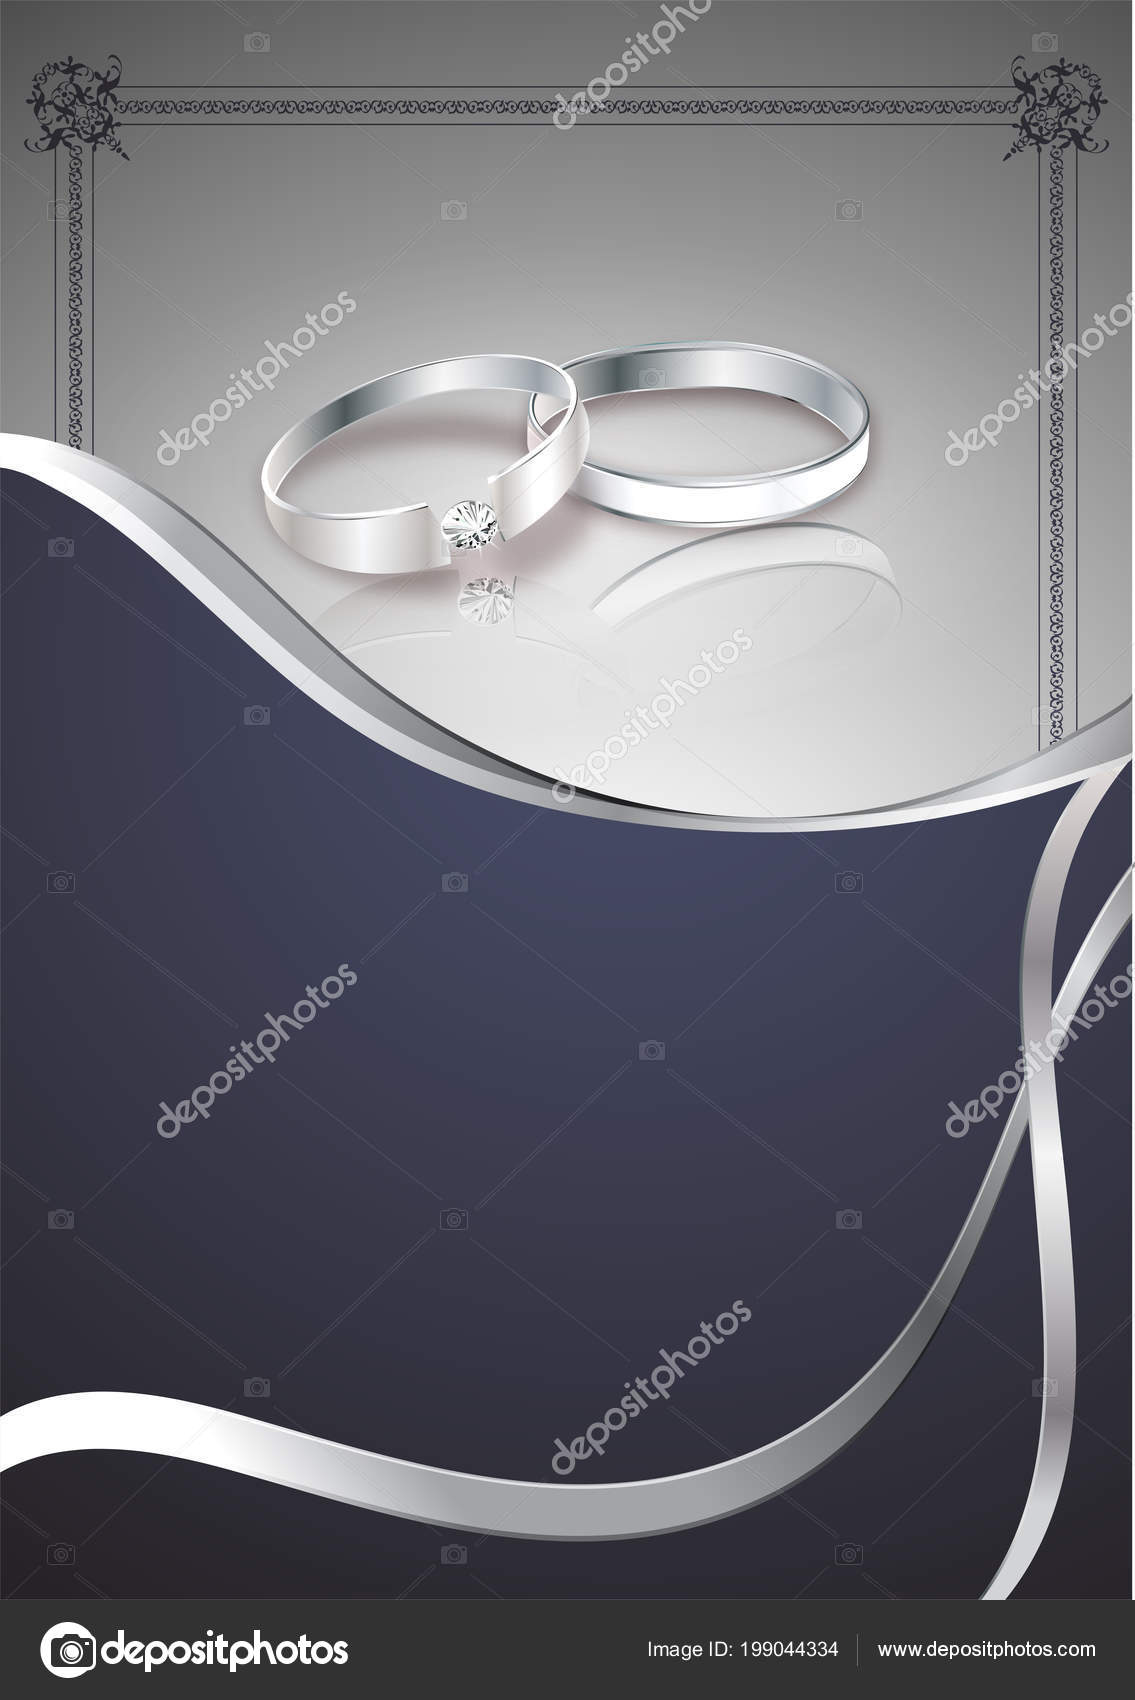 Images Ring Ceremony Invitation Card Design Engagement